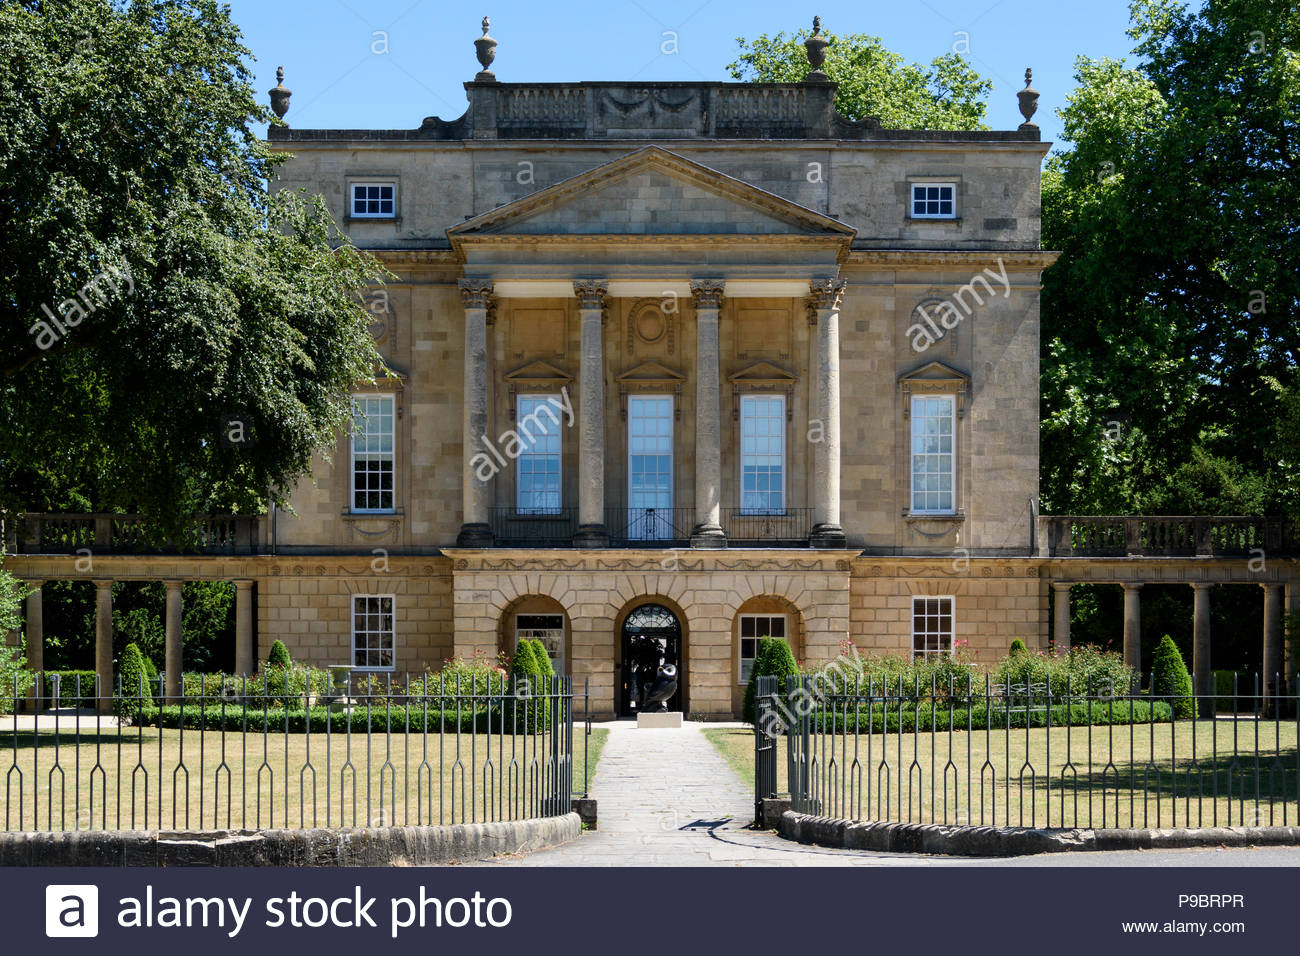 The grand and elegant frontage of The Holburne Museum, Bath, Somerset, England, UK - Stock Image